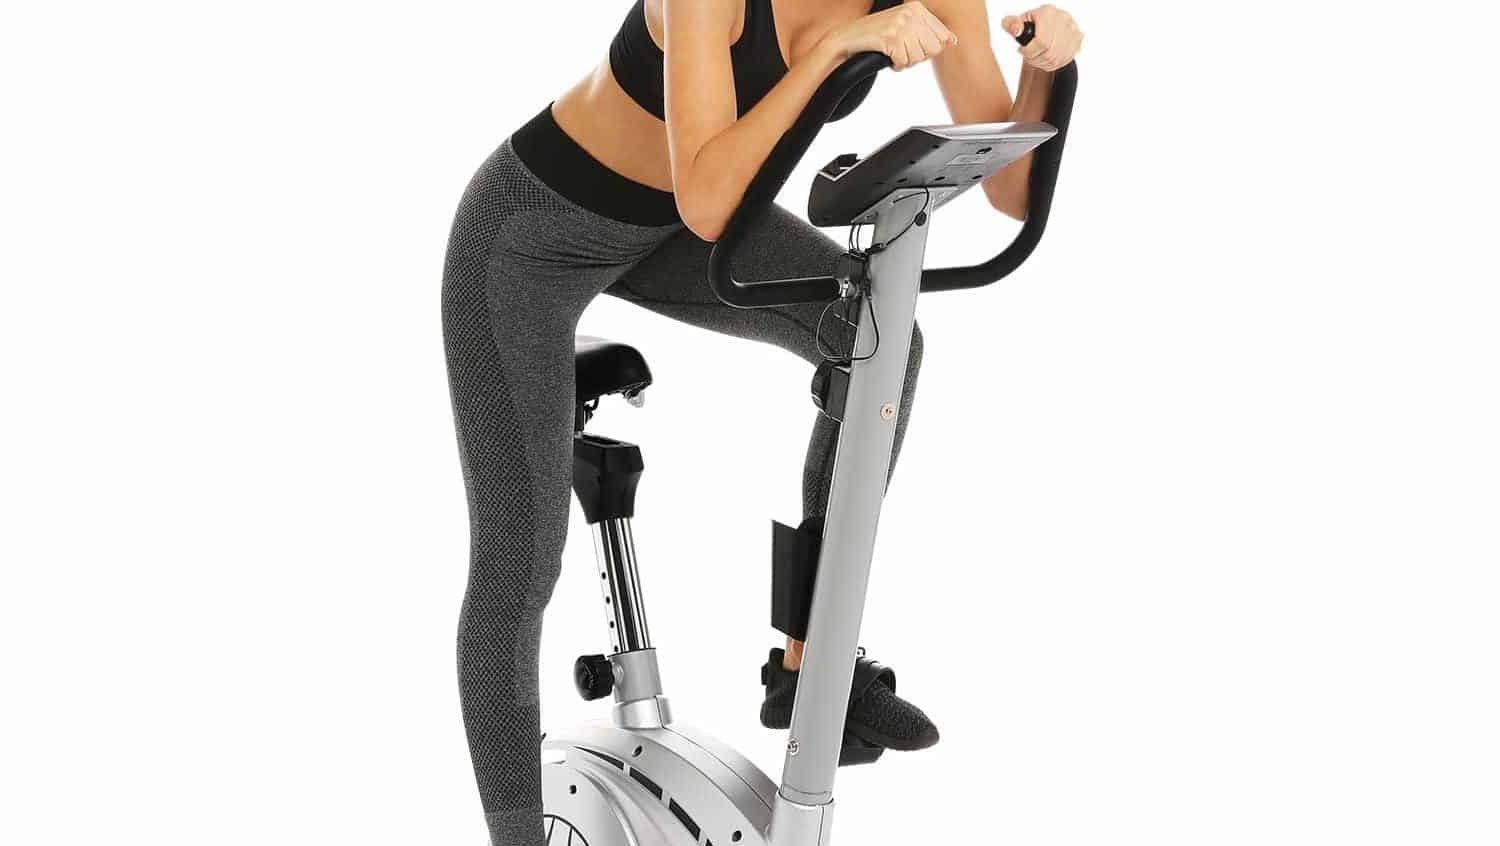 Trbitty Ancheer Upright Magnetic Exercise Bike Review